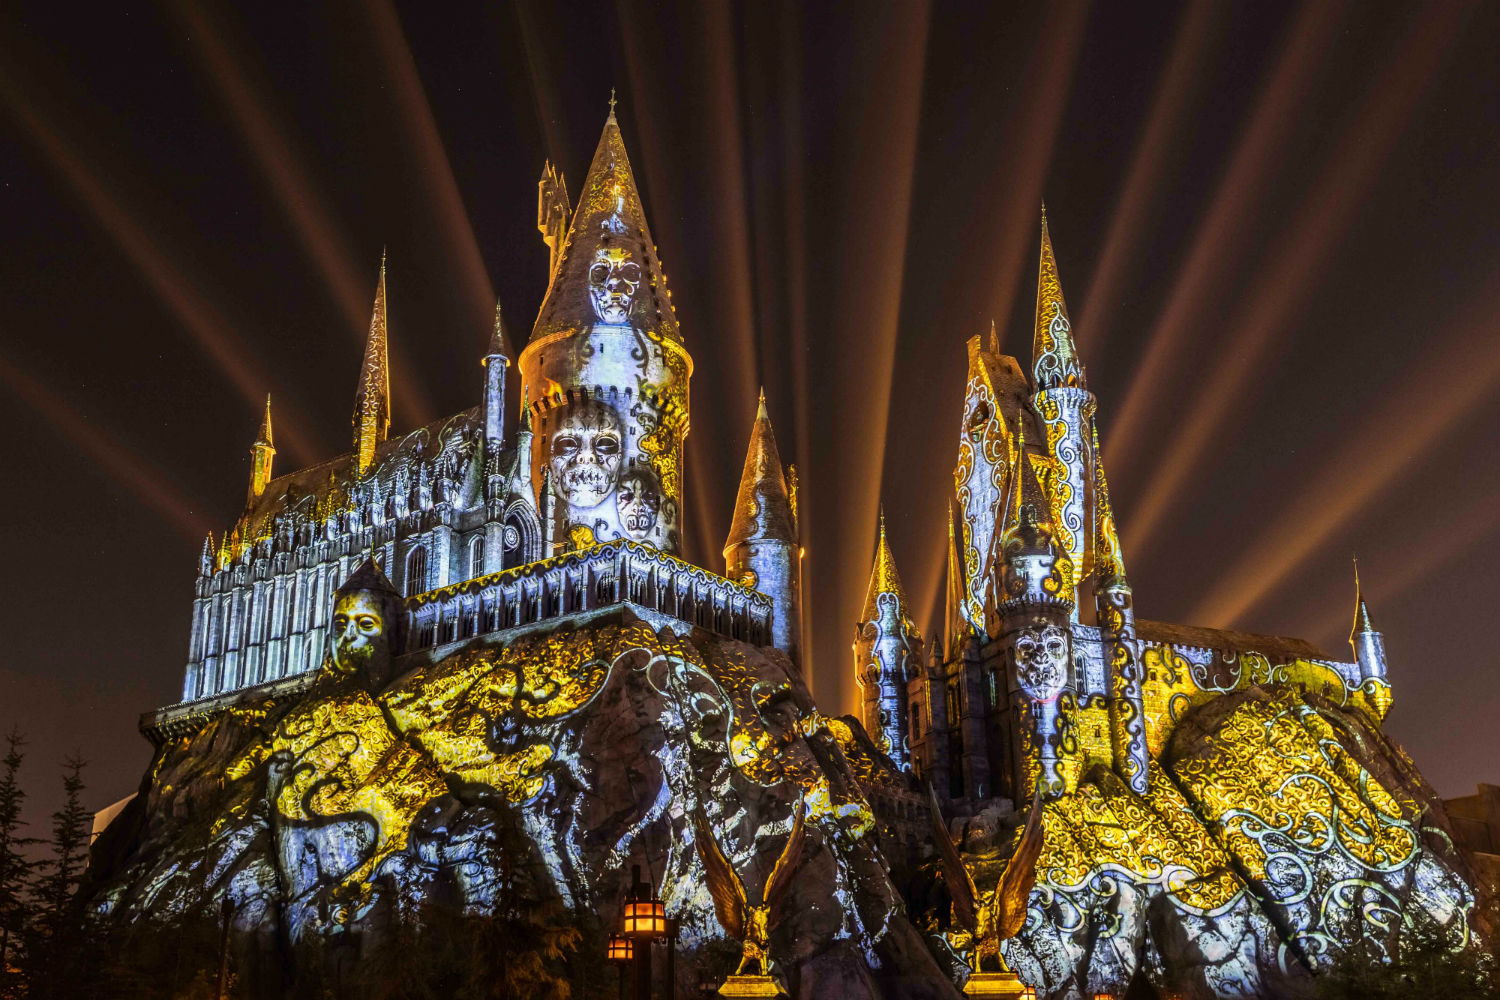 The highly anticipated projection show incorporates images and lights from the Harry Potter series.